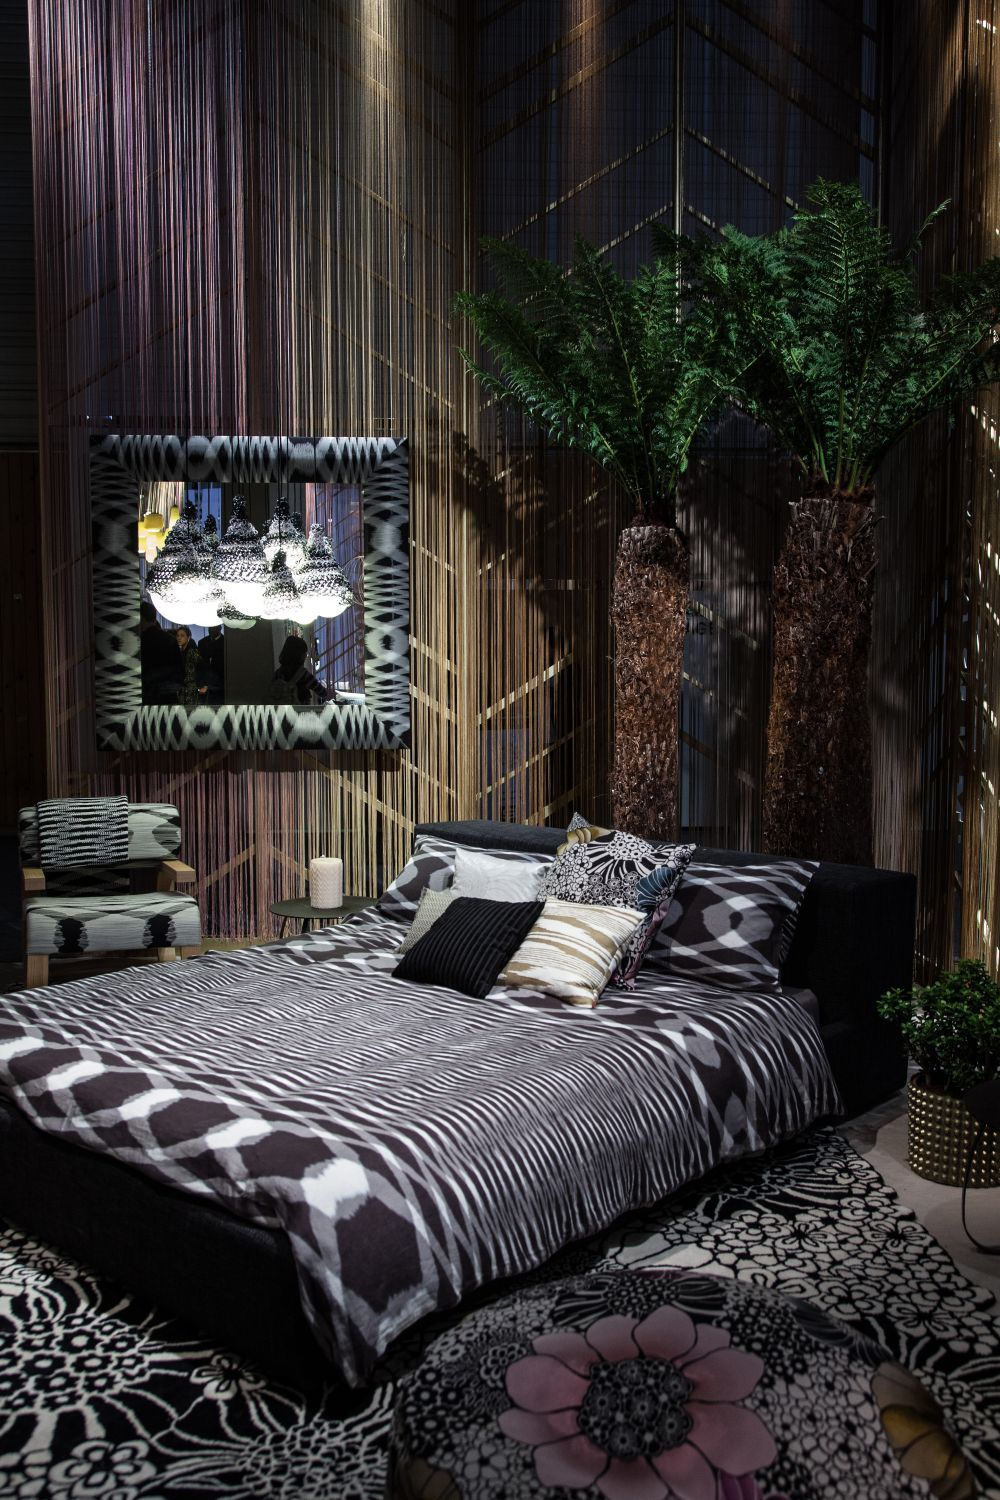 An eclectic bedroom decor can be characterized by an abundance of different prints and patterns